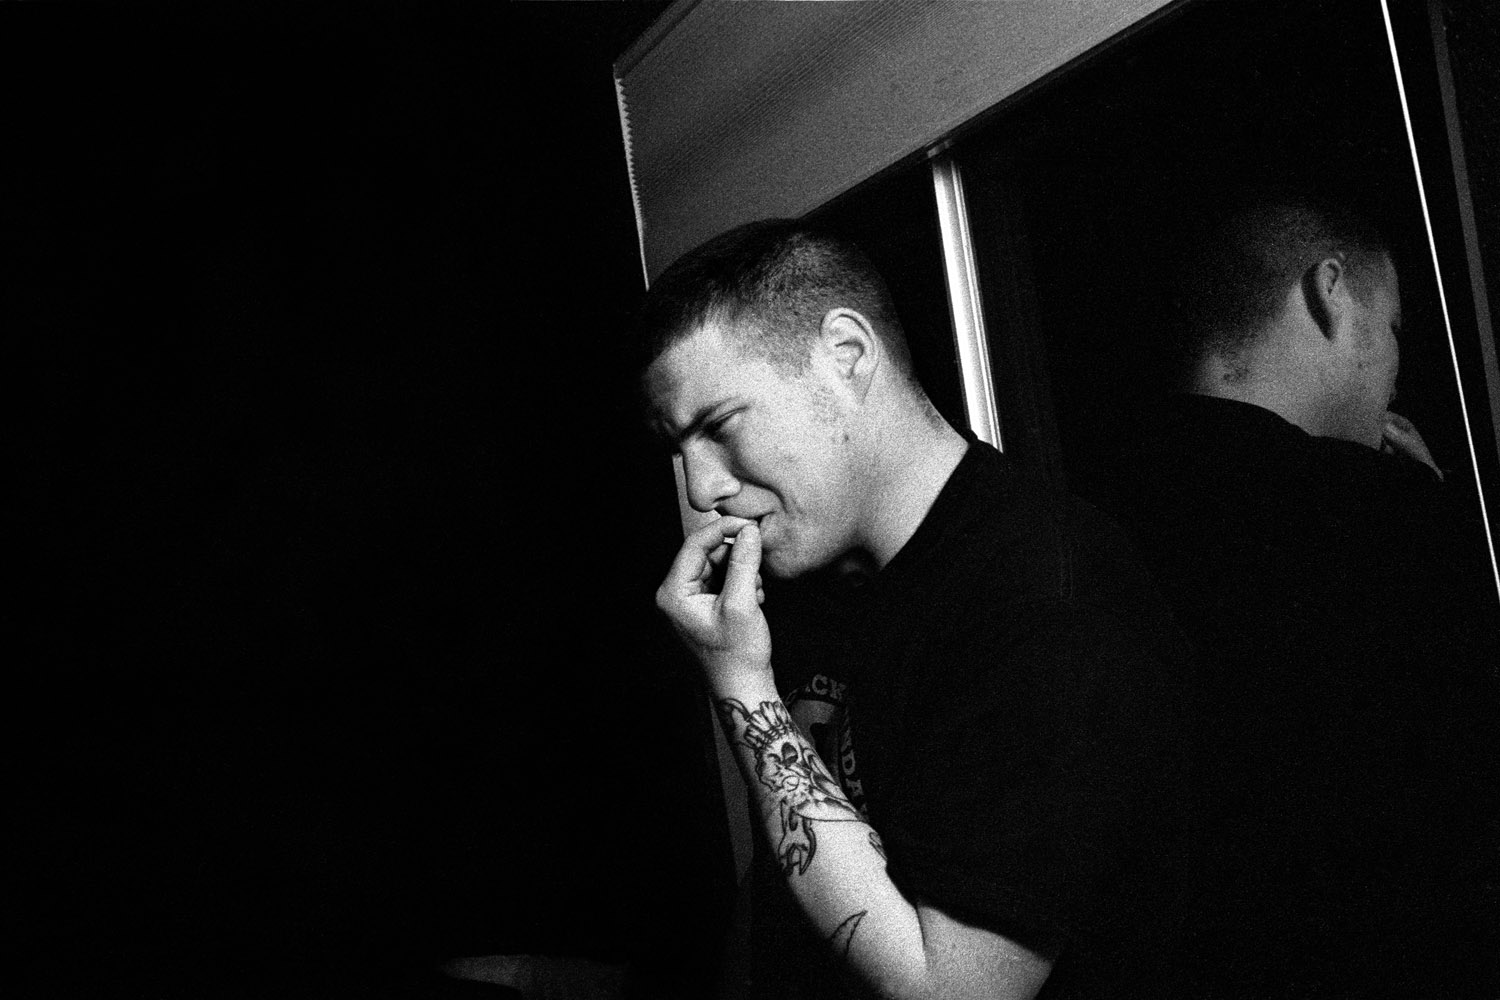 Specialist Adam Ramsey, 22, experiences an anxiety attack and flashback at his home in Carson City, Nev. February 2010.